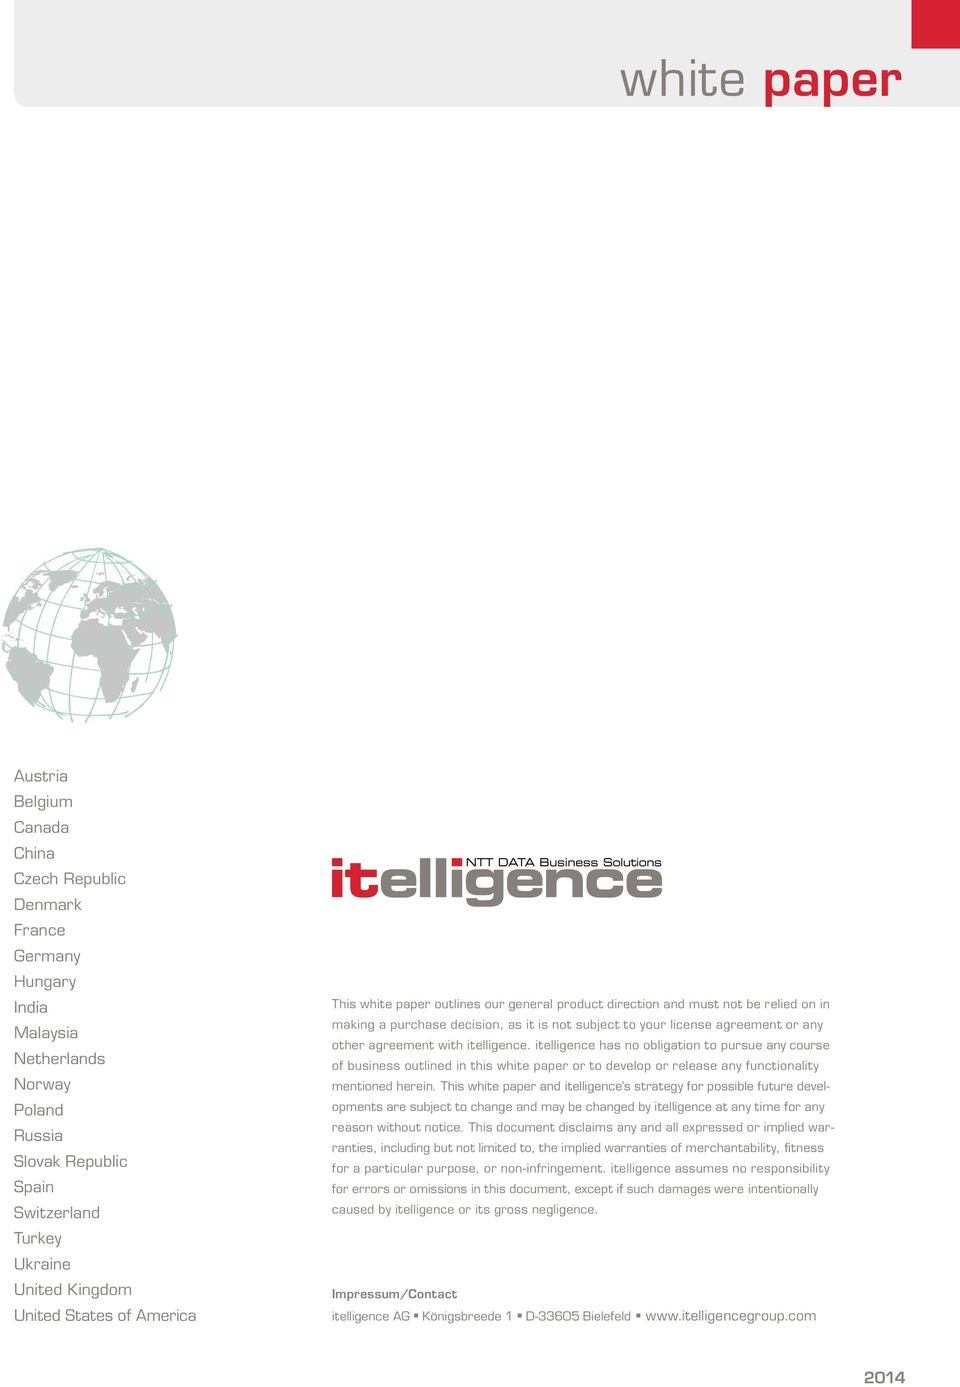 agreement with itelligence. itelligence has no obligation to pursue any course of business outlined in this white paper or to develop or release any functionality mentioned herein.